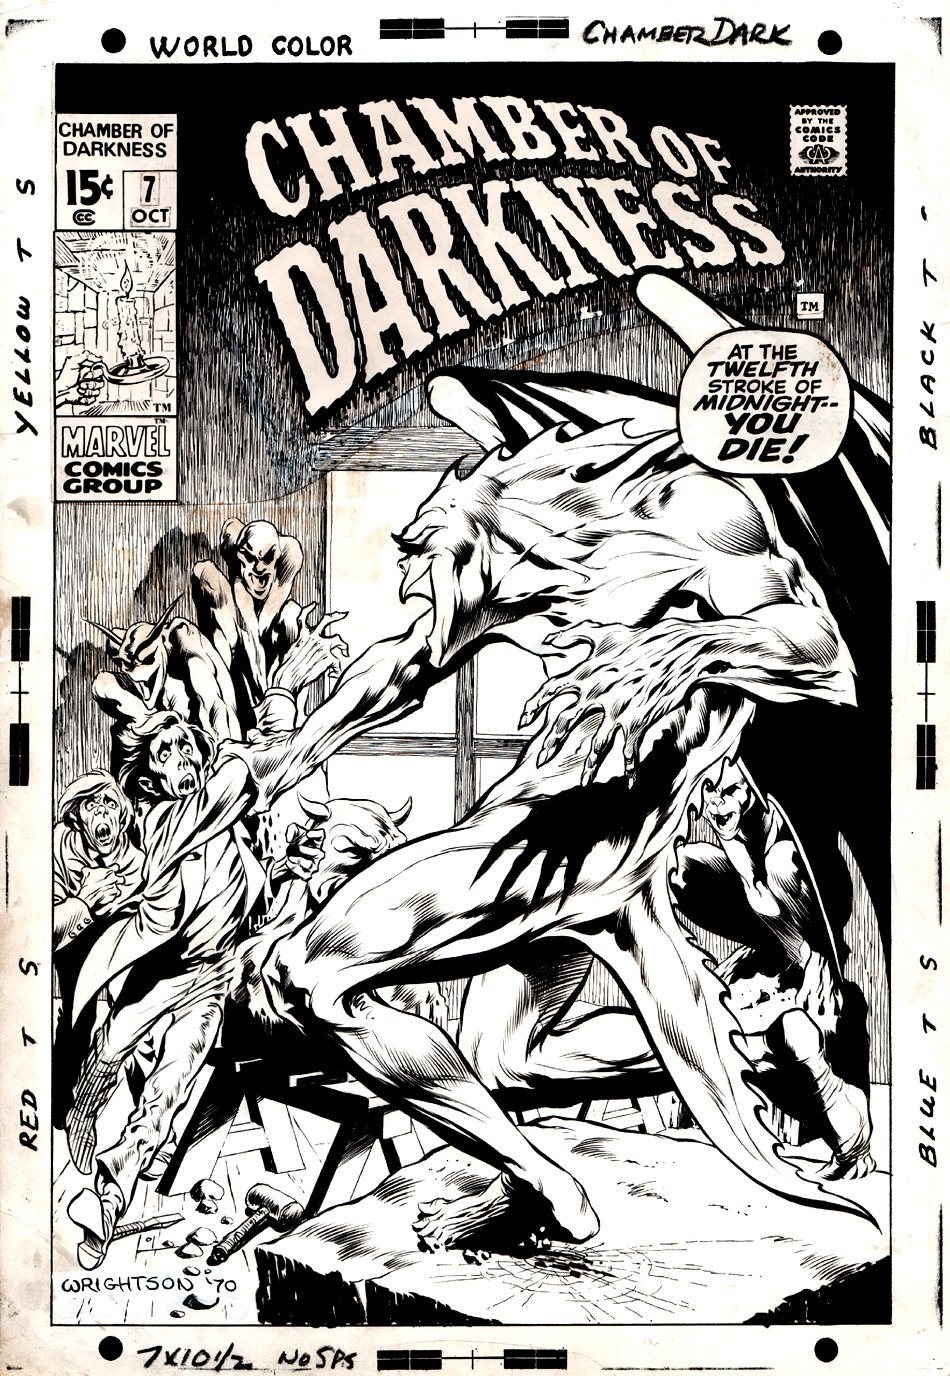 Chamber of Darkness #7 Cover (VERY FIRST WRIGHTSON MARVEL COVER!) 1970